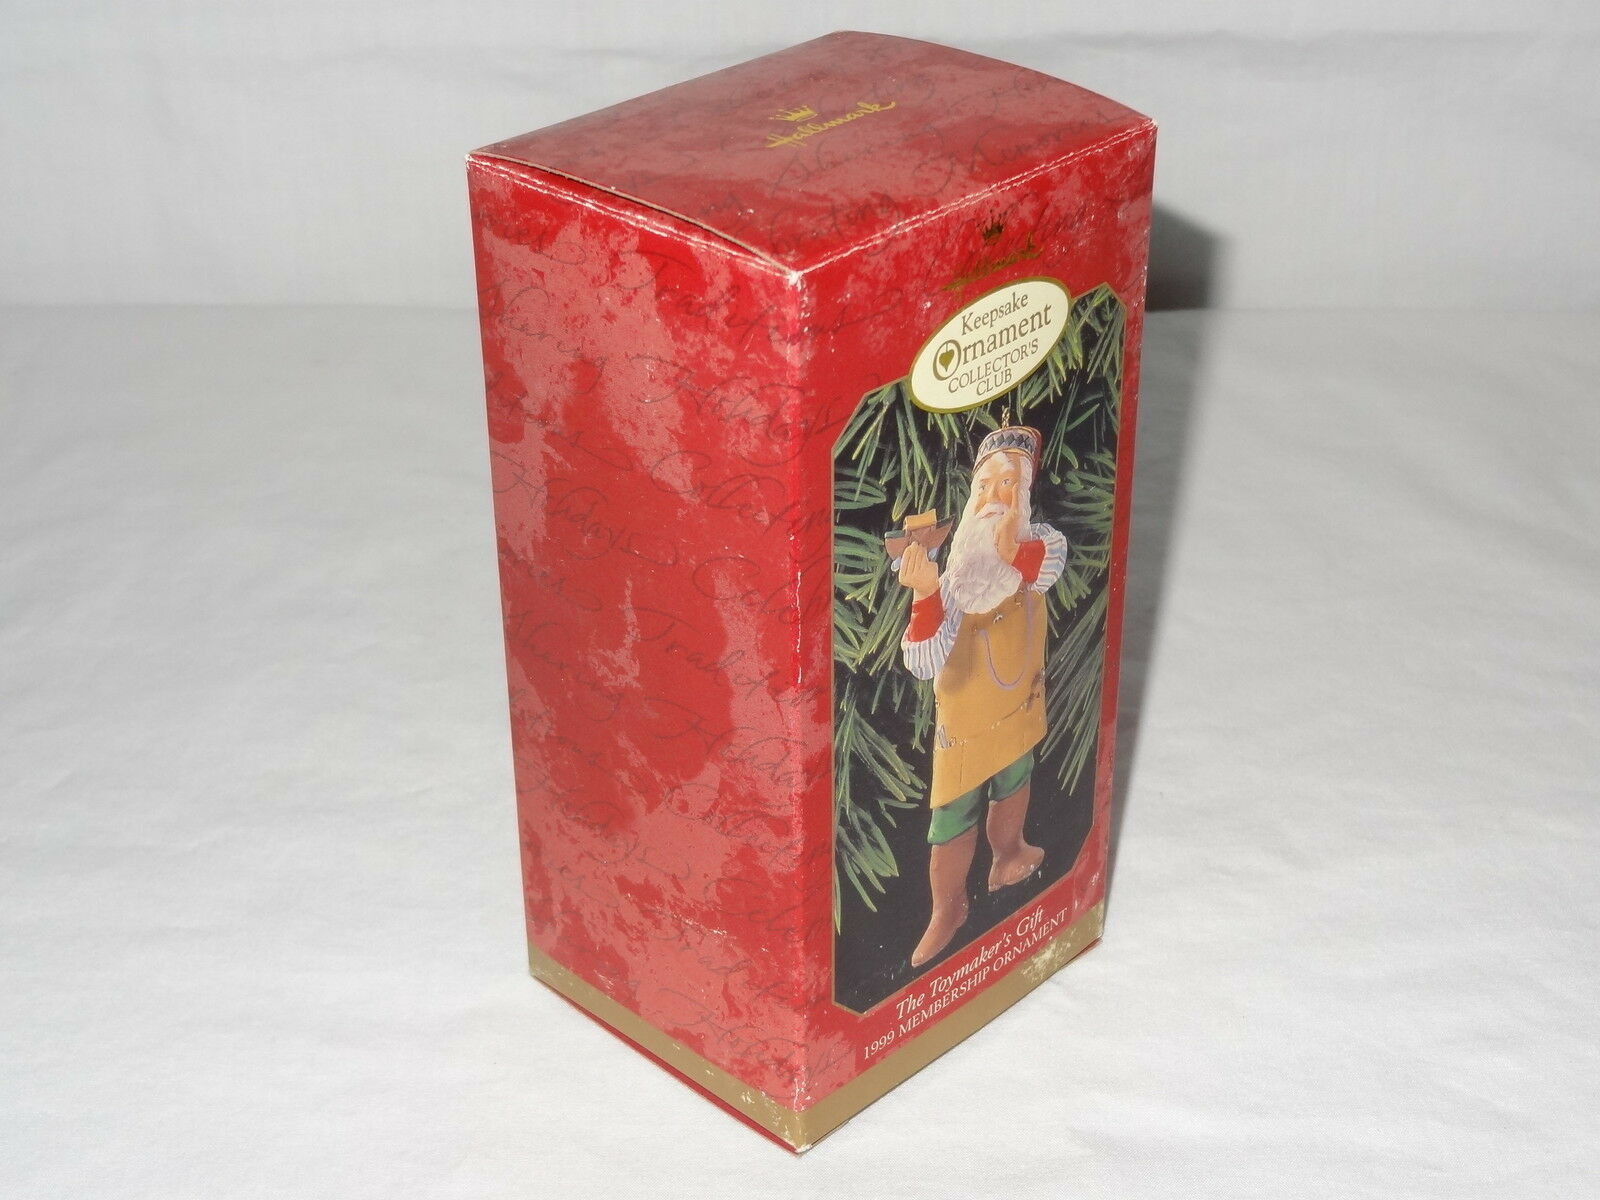 1999 Hallmark Ornaments Toymakers Gift Series Santa Keepsake Collectors Club image 10